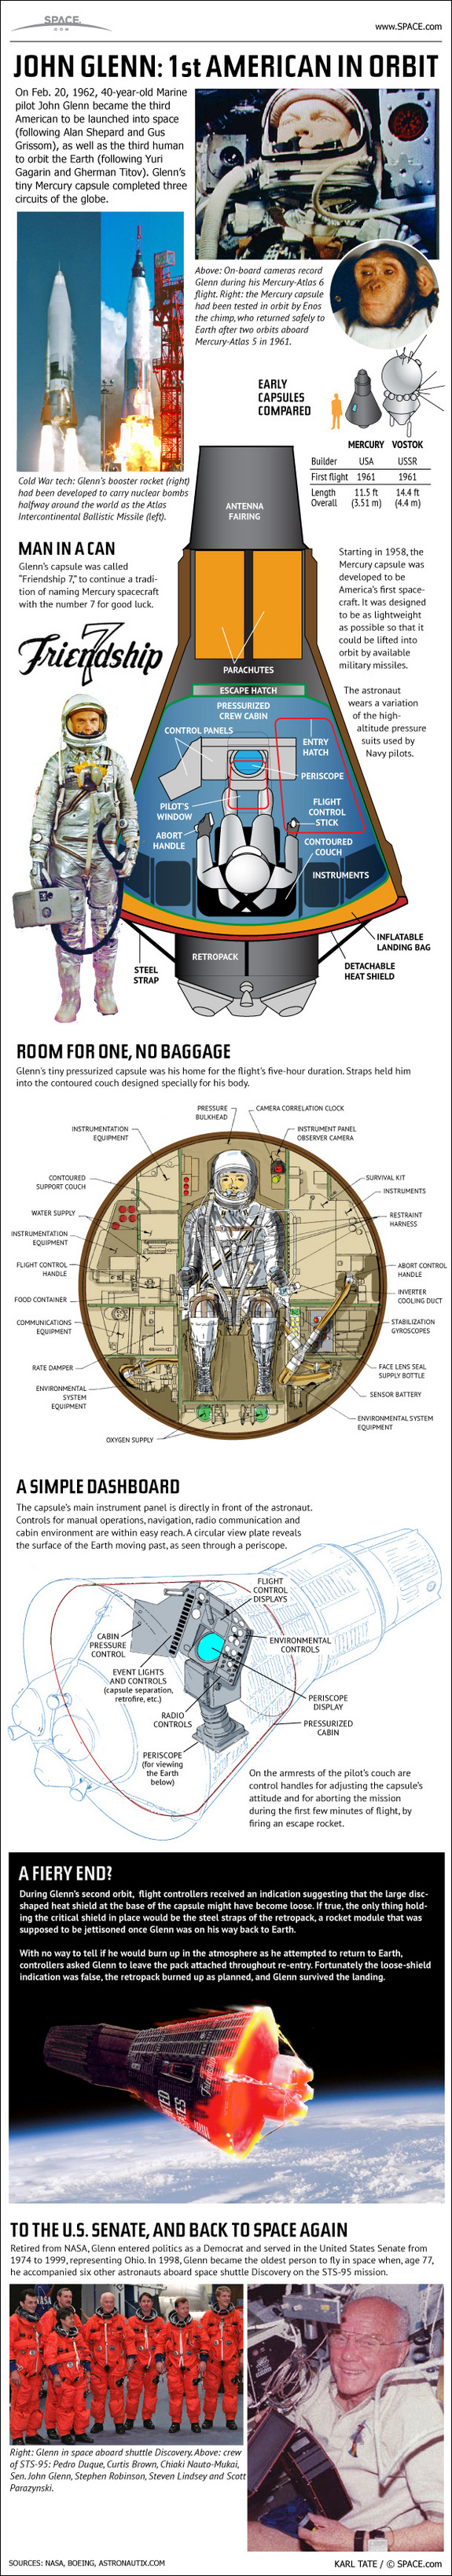 Learn about John Glenn's history-making Mercury space flight, in this SPACE.com infographic.